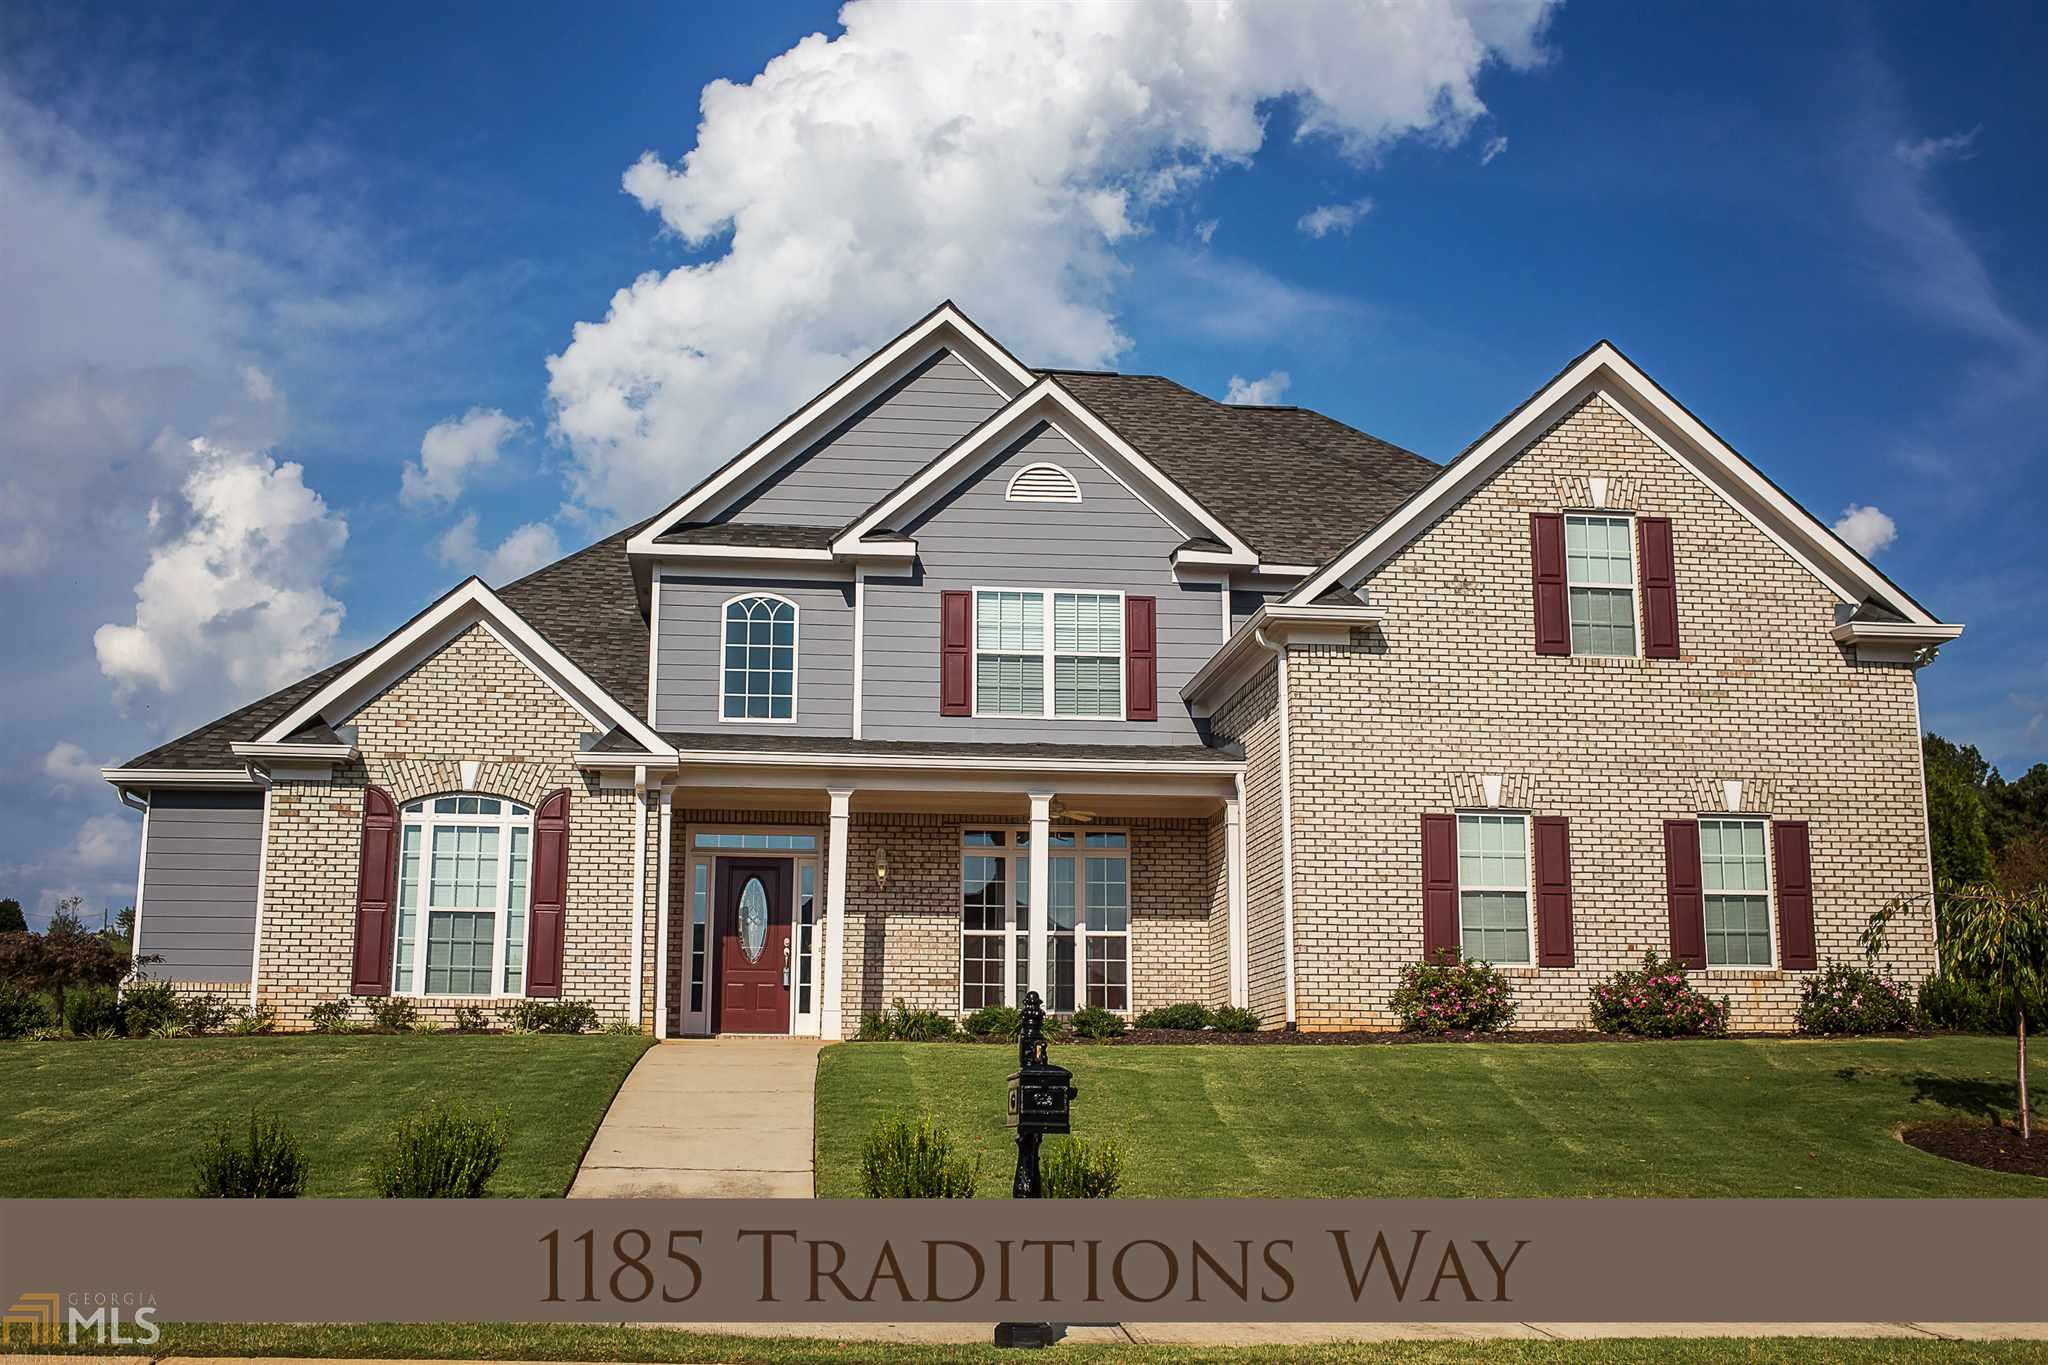 1185 Traditions Way